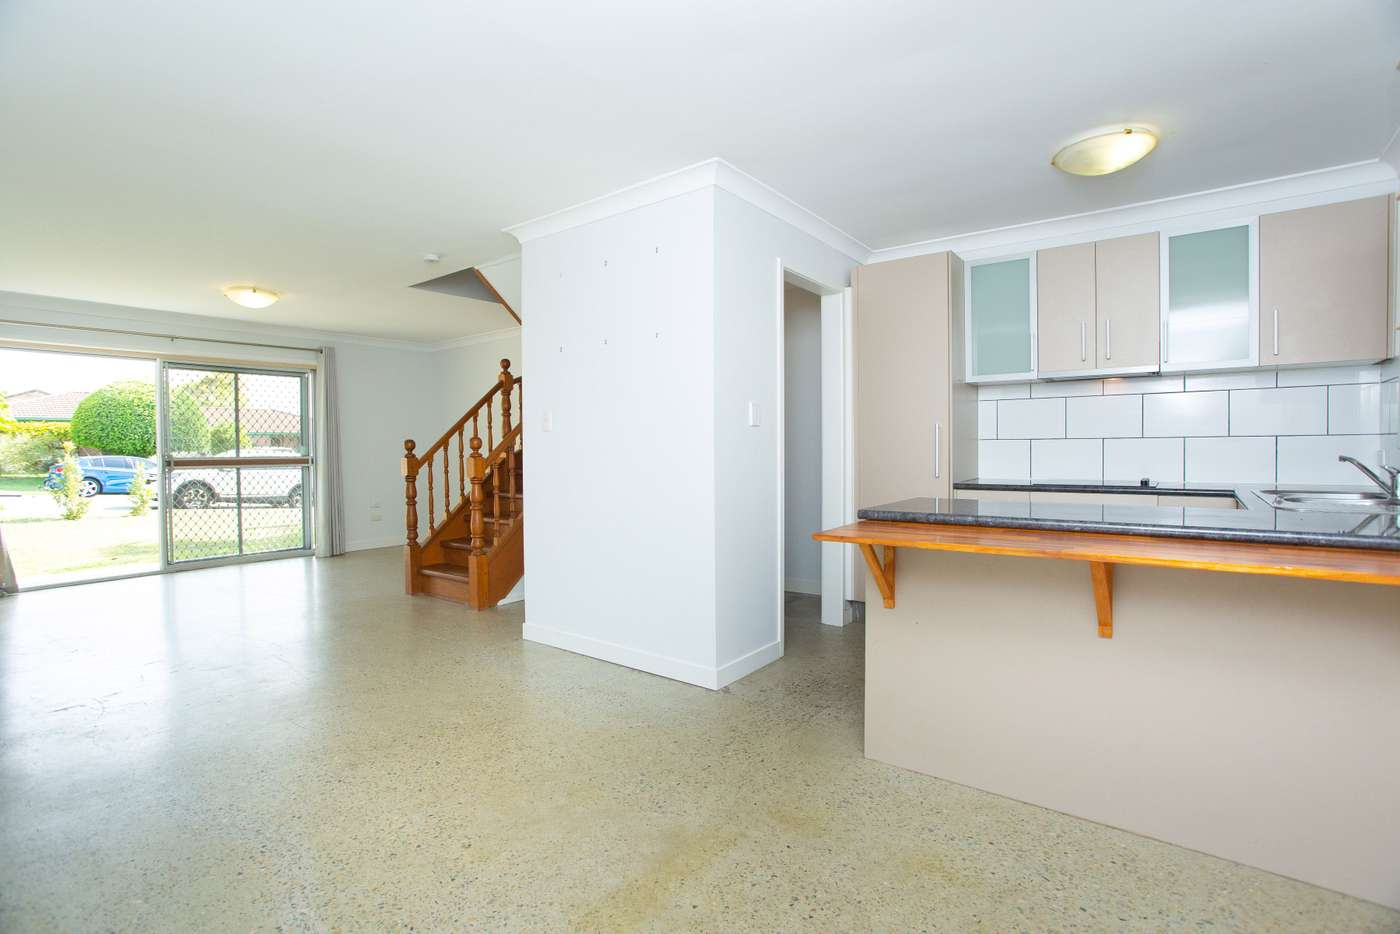 Main view of Homely house listing, 2/21 Corunna Crescent, Ashmore QLD 4214